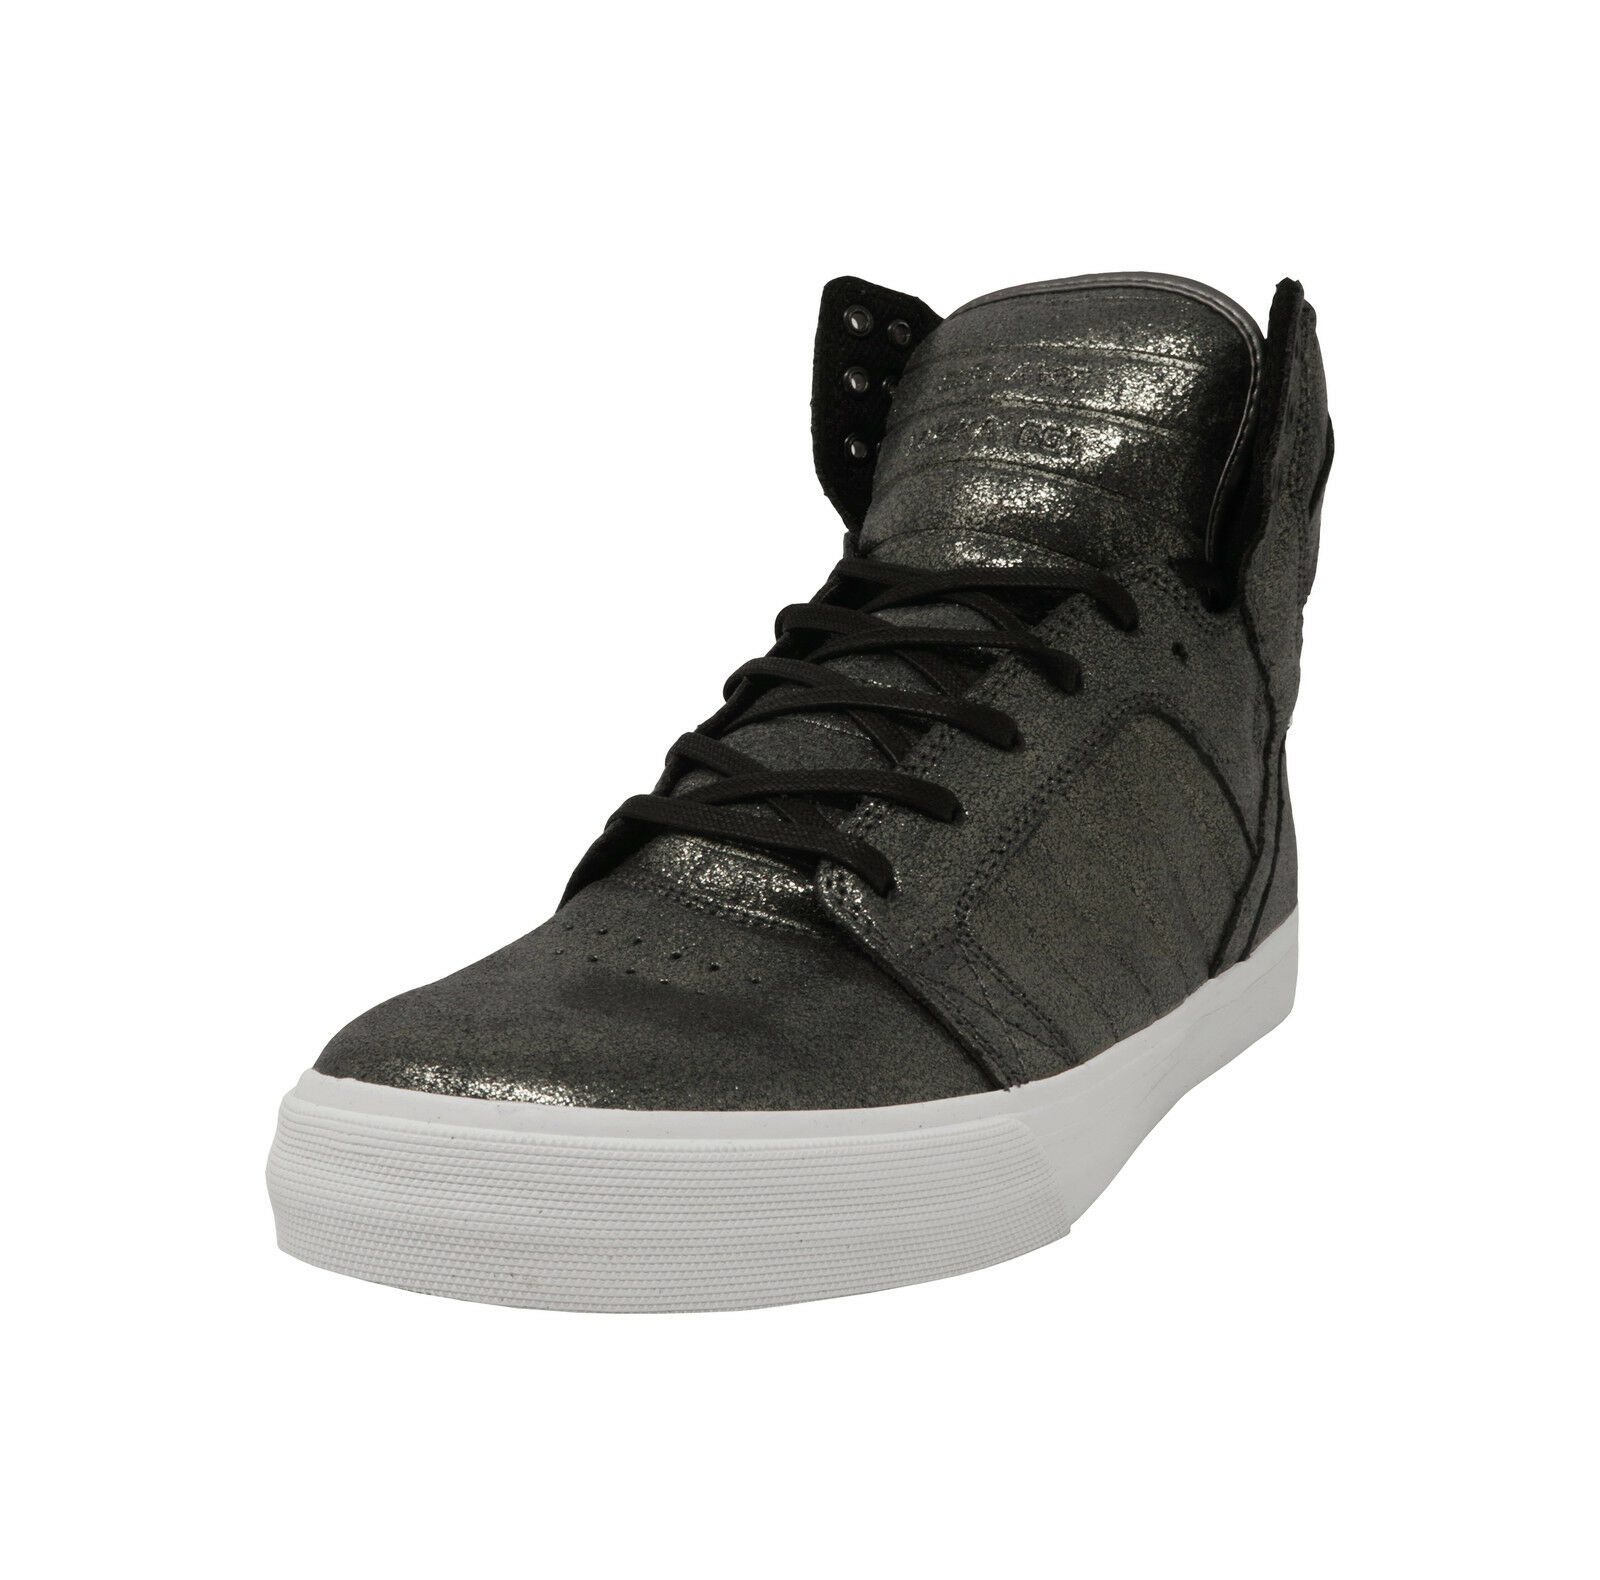 SUPRA Skytop Pewter Metalic White Hi Top Lace Up  Uomo Shoes